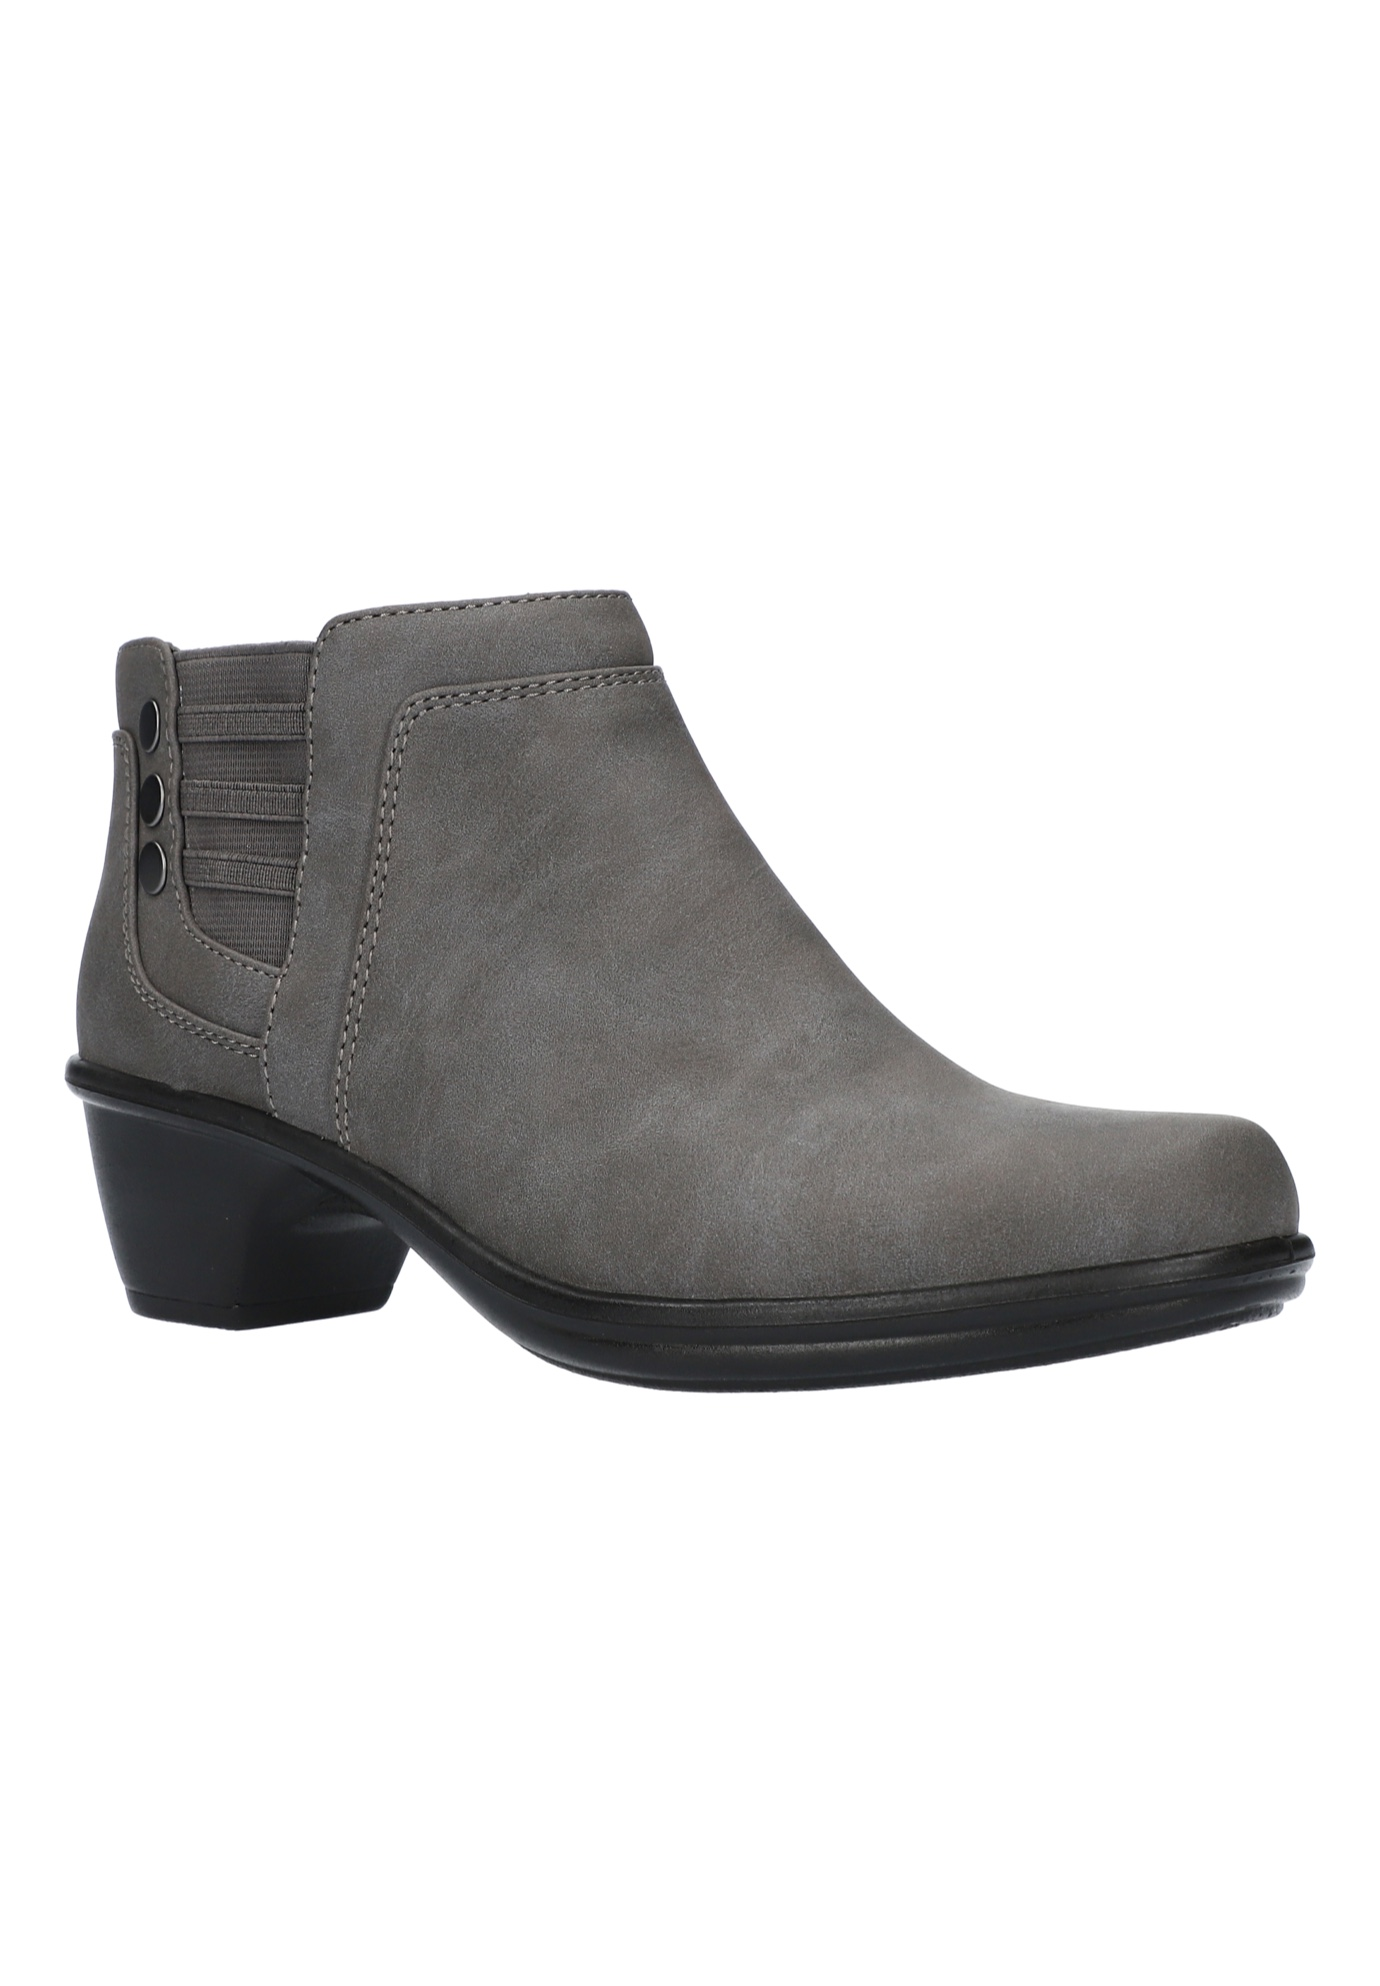 Jessalyn Booties by Easy Street,